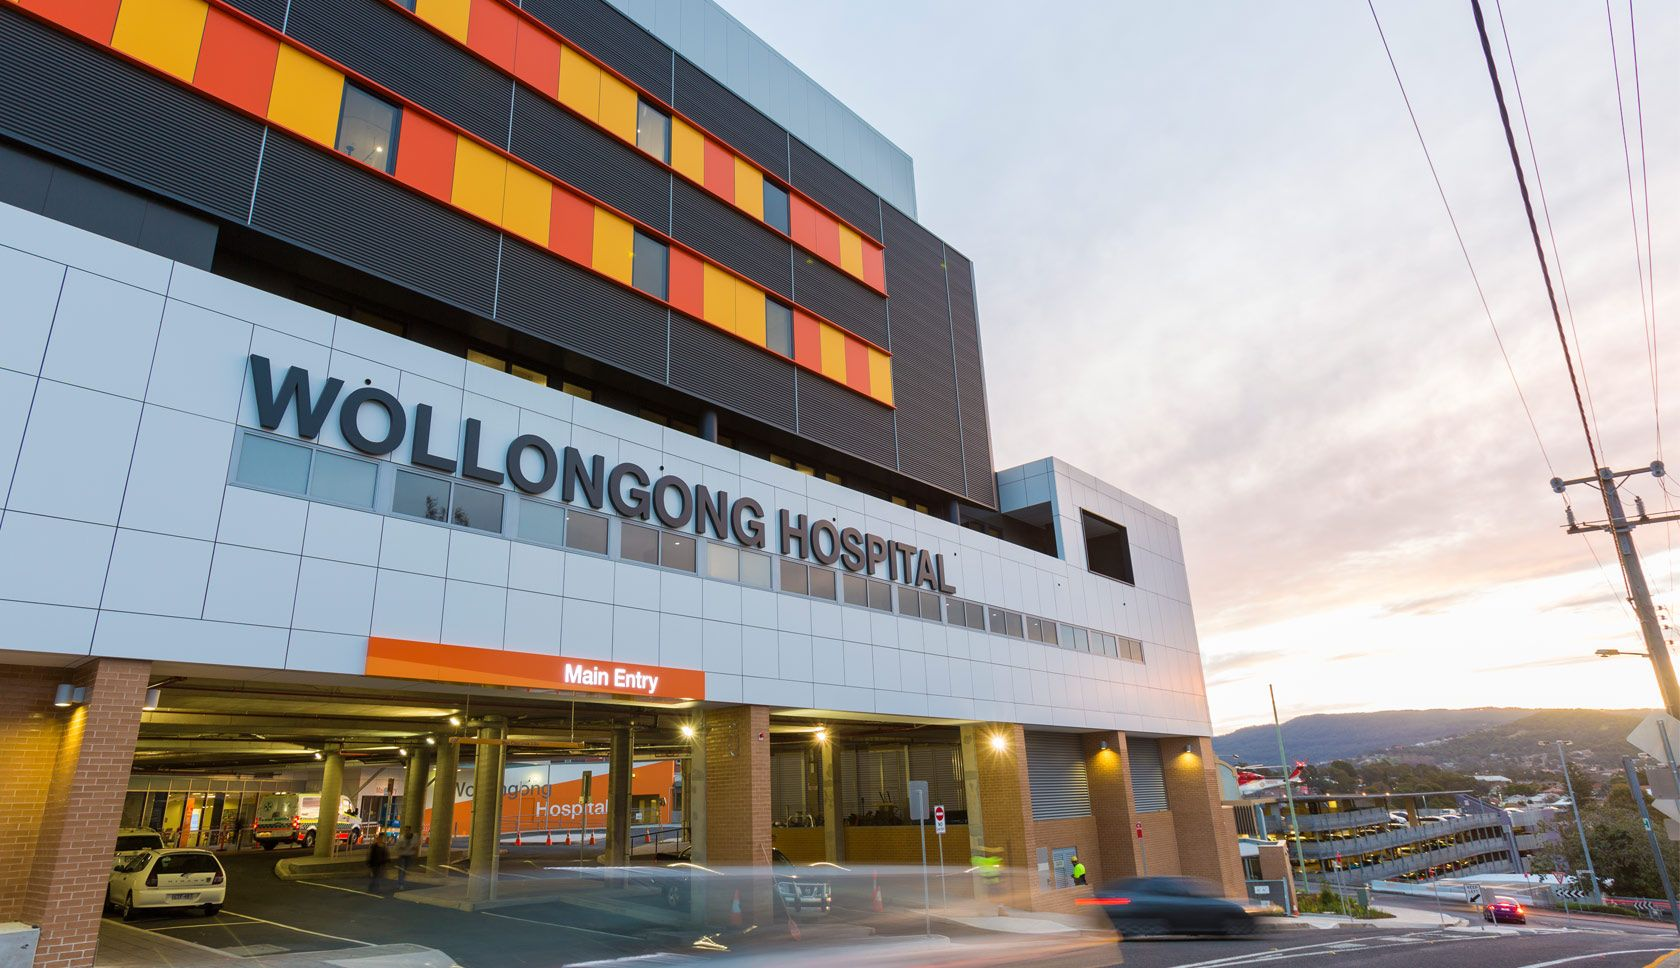 The main entrance of the Woolongong hospital building